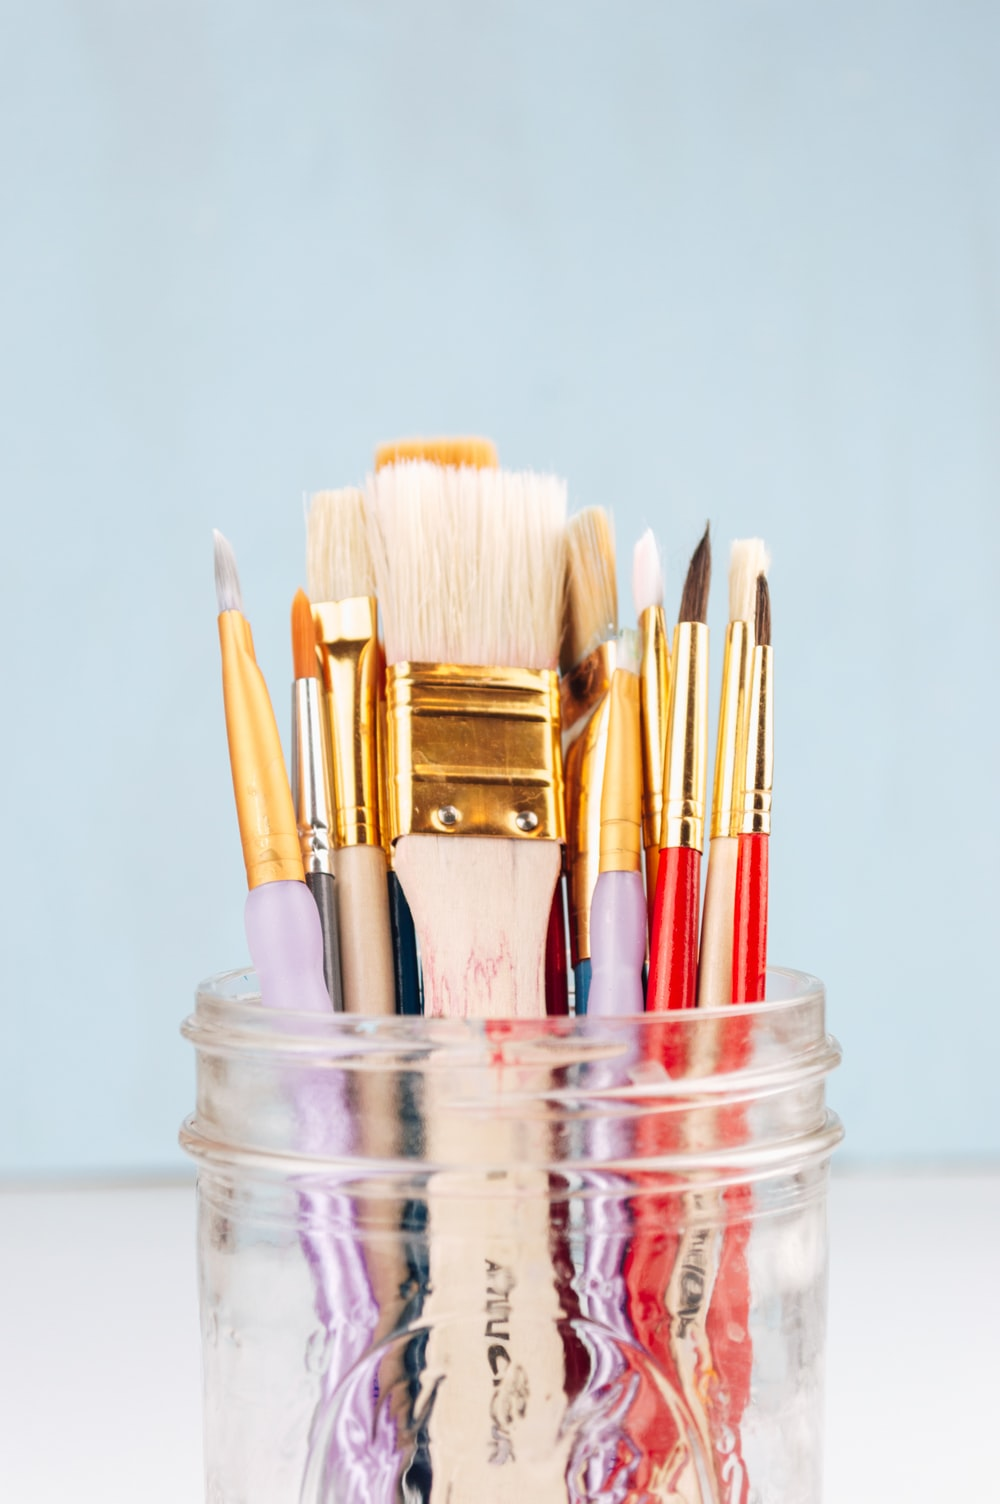 brown and red makeup brushes in clear glass jar